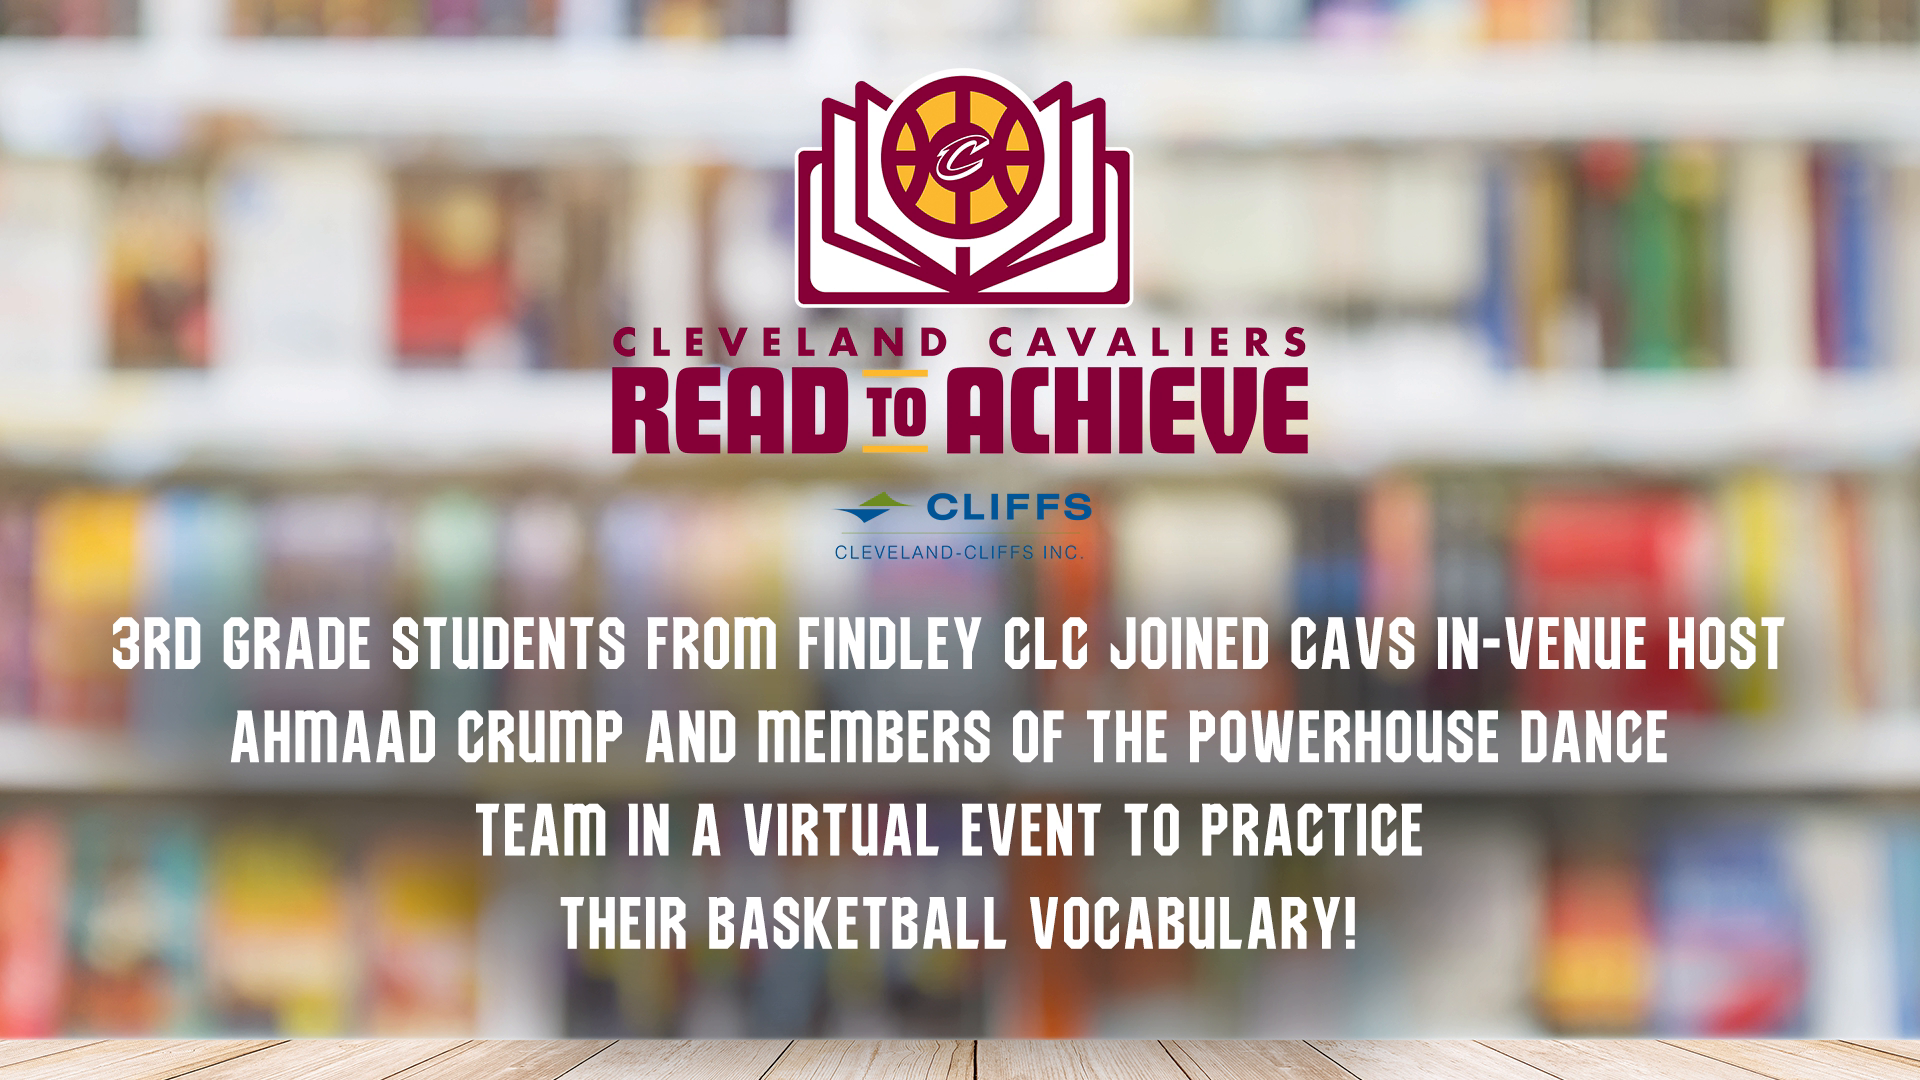 Cavs Read to Achieve Virtual Event